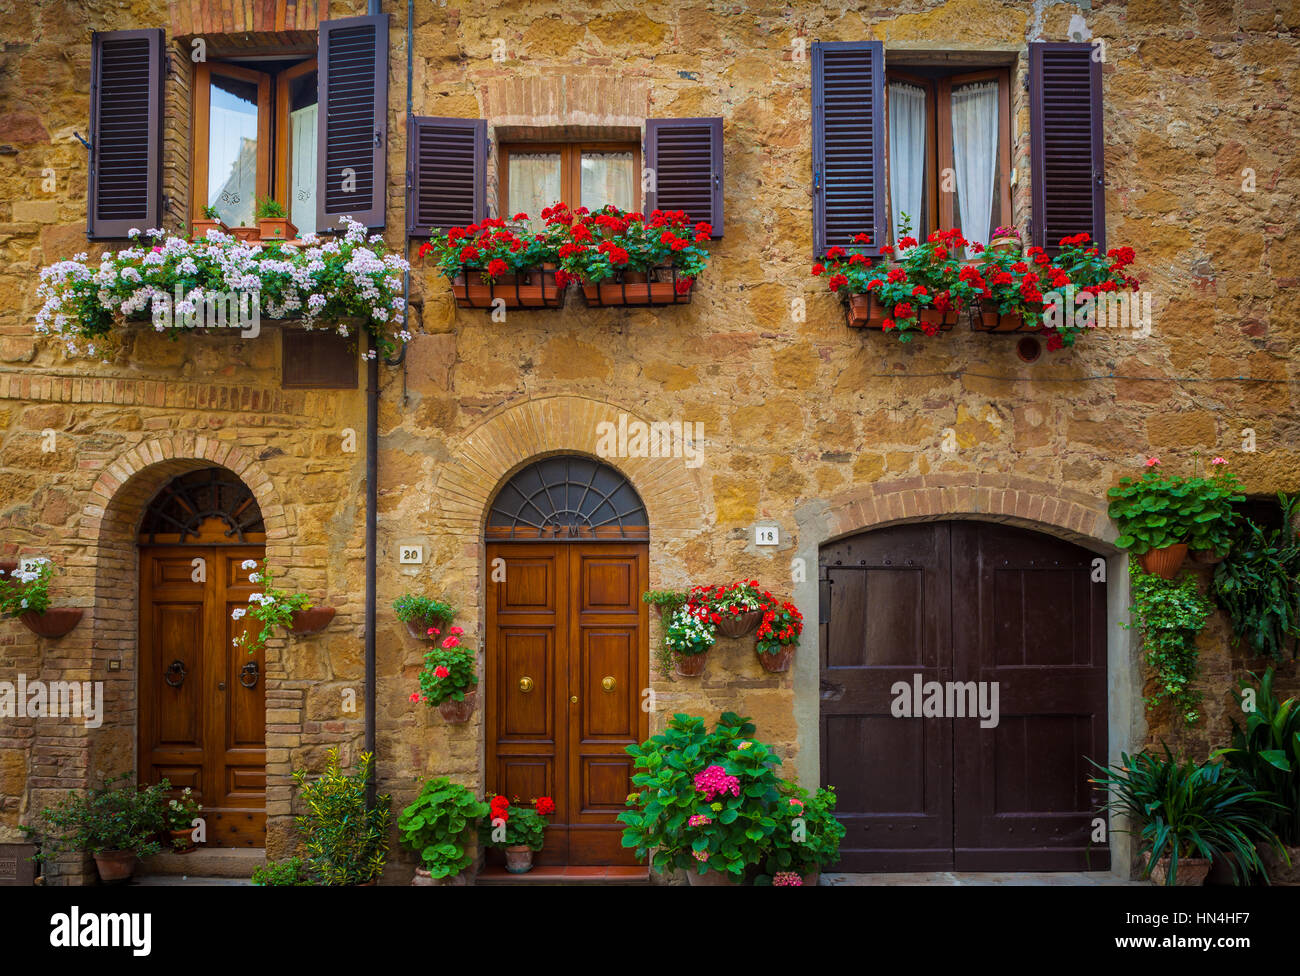 House fronts in the Tuscan hill town of Pienza - Stock Image